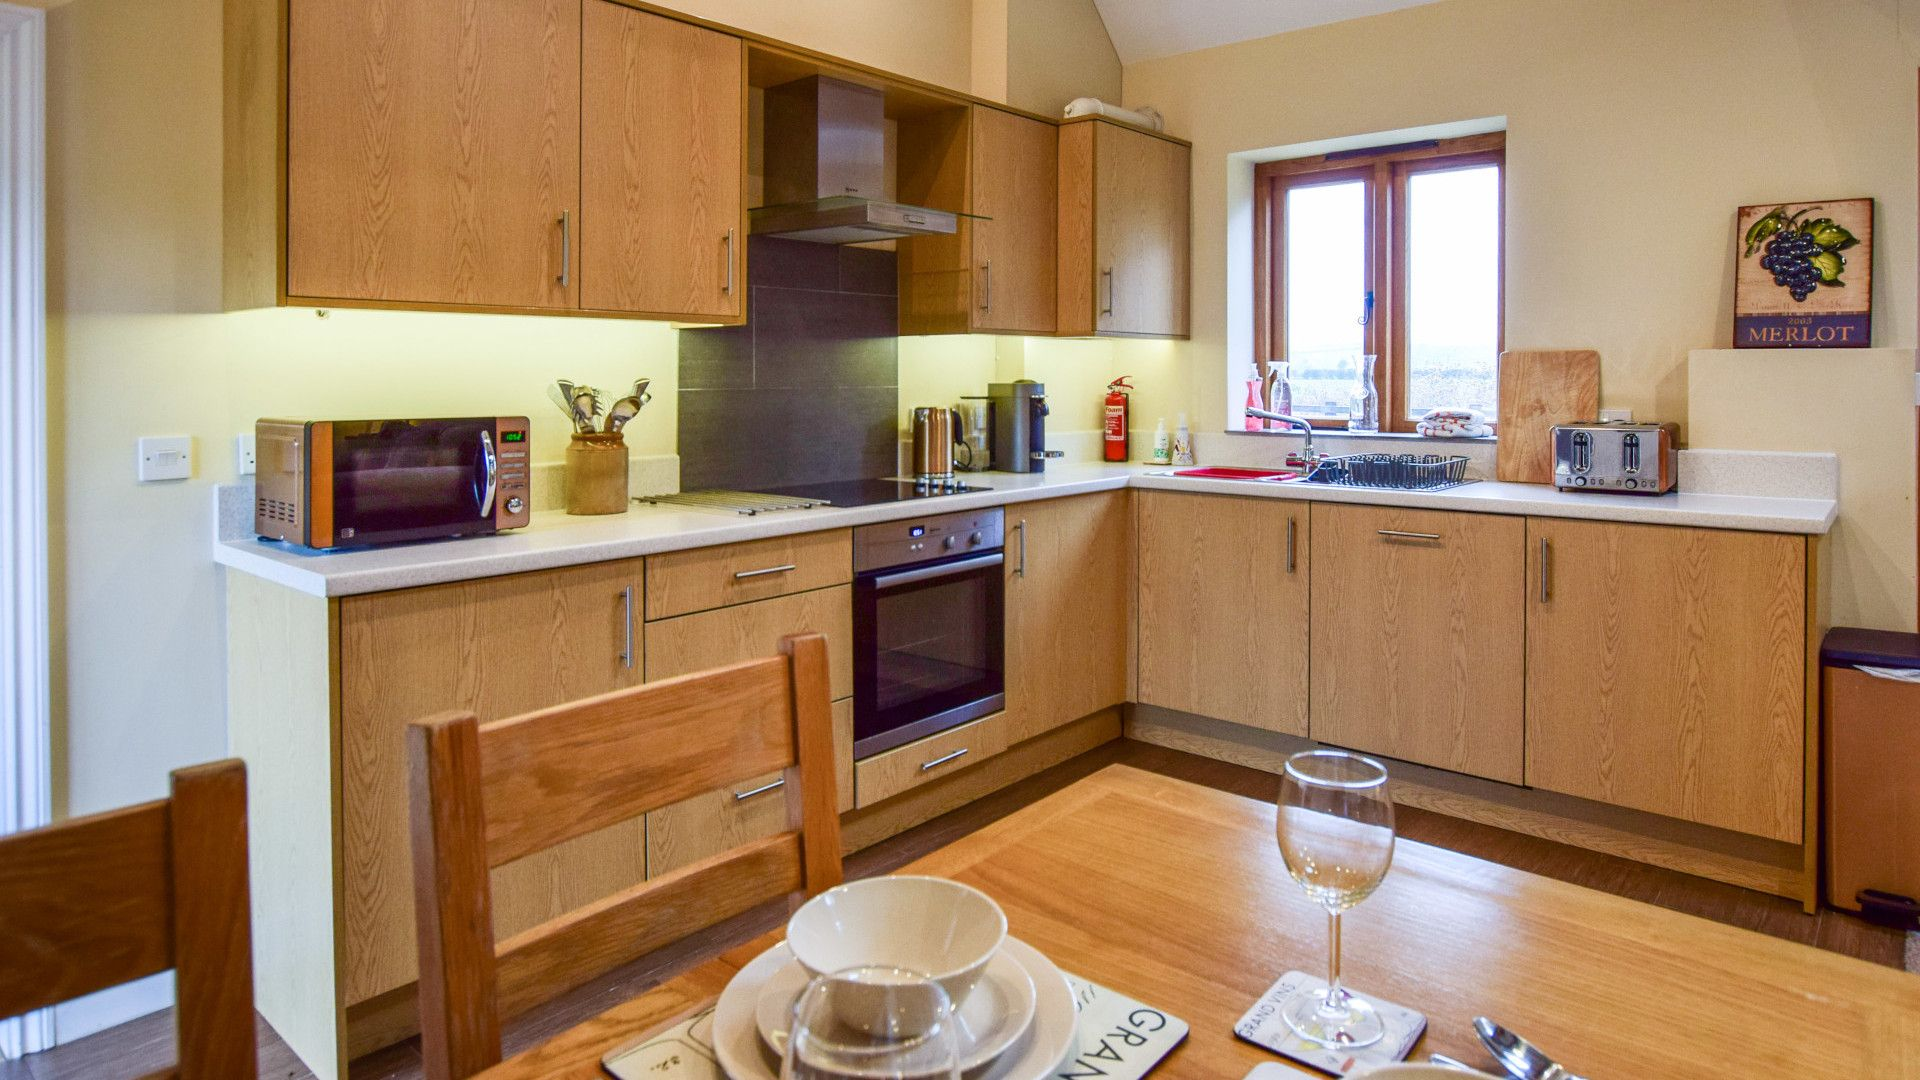 Kitchen, dining area, Combine Shed, Bolthole Retreats